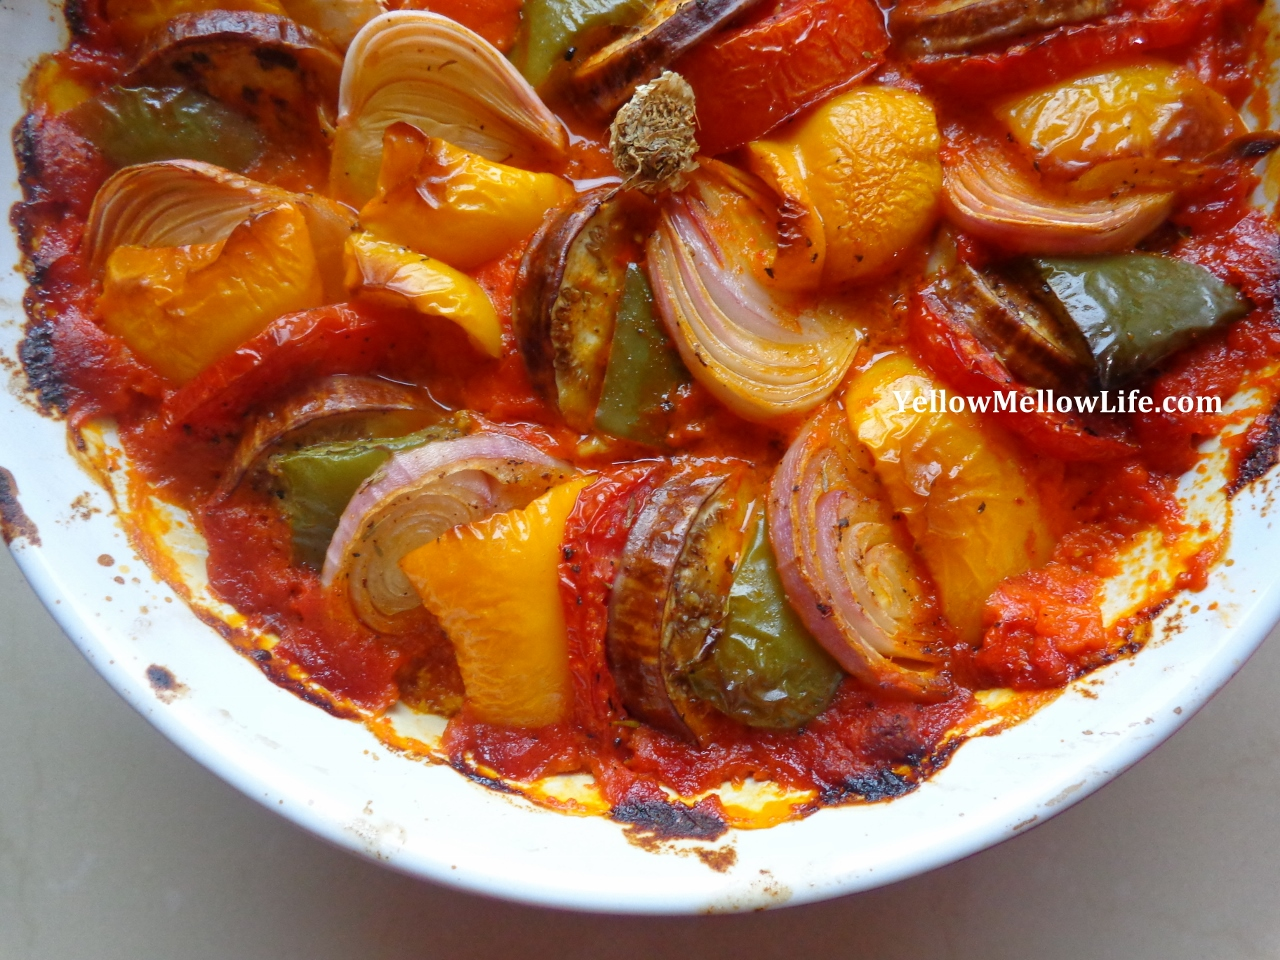 My Version of Sorted's Version of Thomas Keller's Version of a Traditional Ratatouille